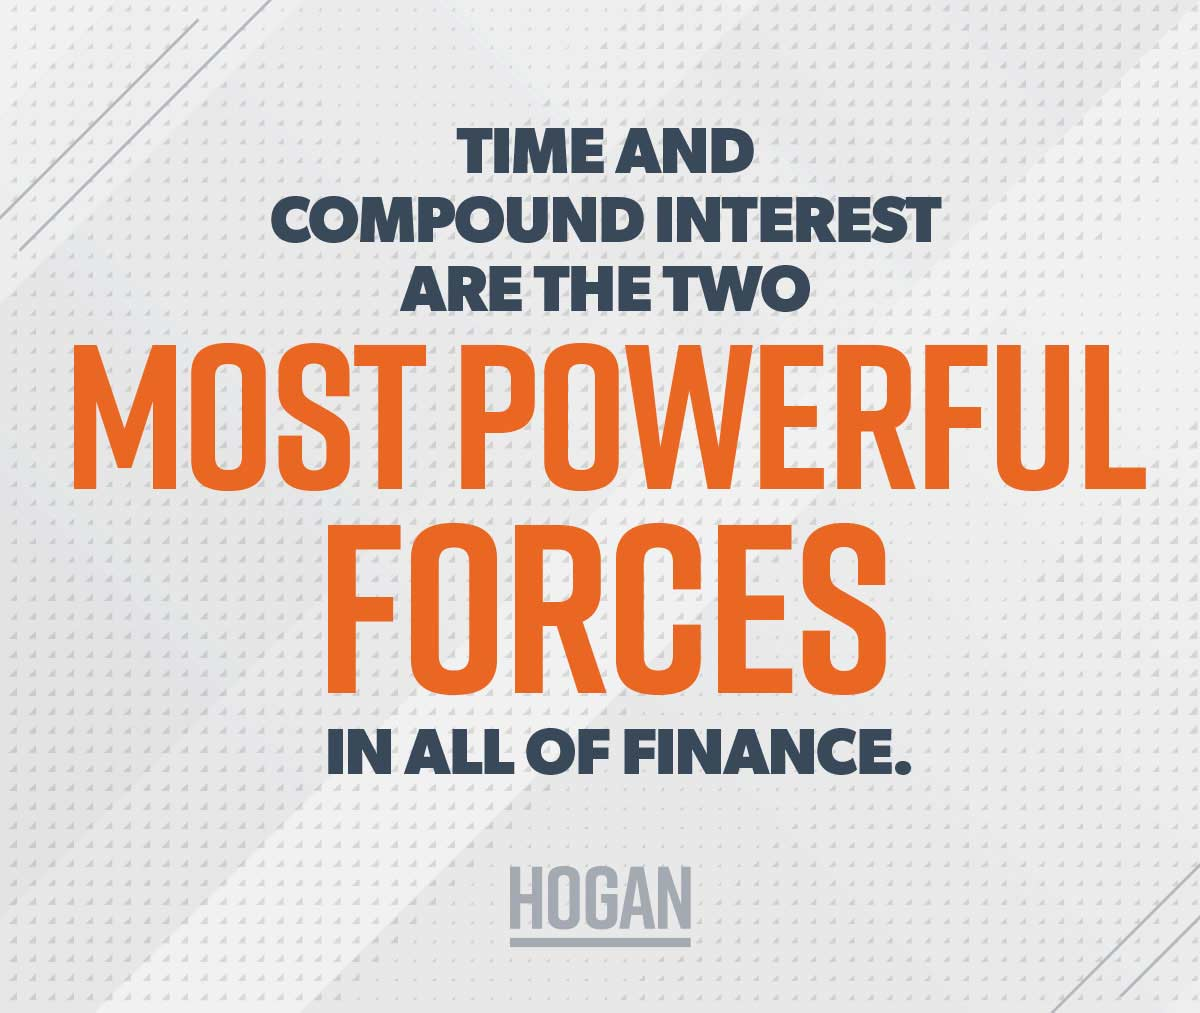 """A graphic that says """"Time and compound interest are the two most powerful forces in all of finance."""""""